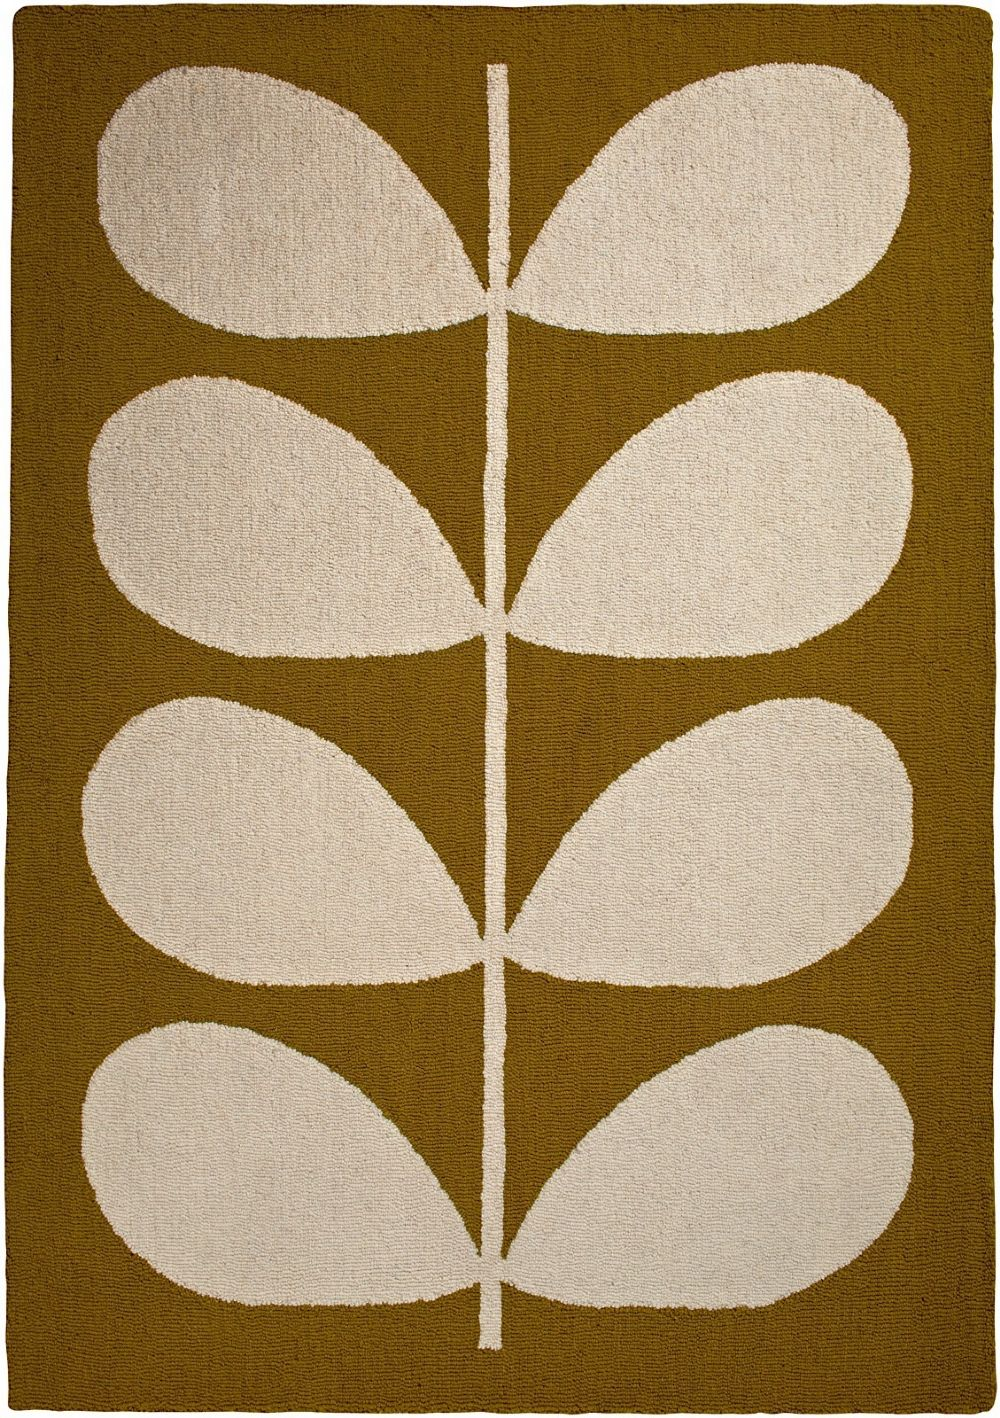 surya orla kiely country & floral area rug collection